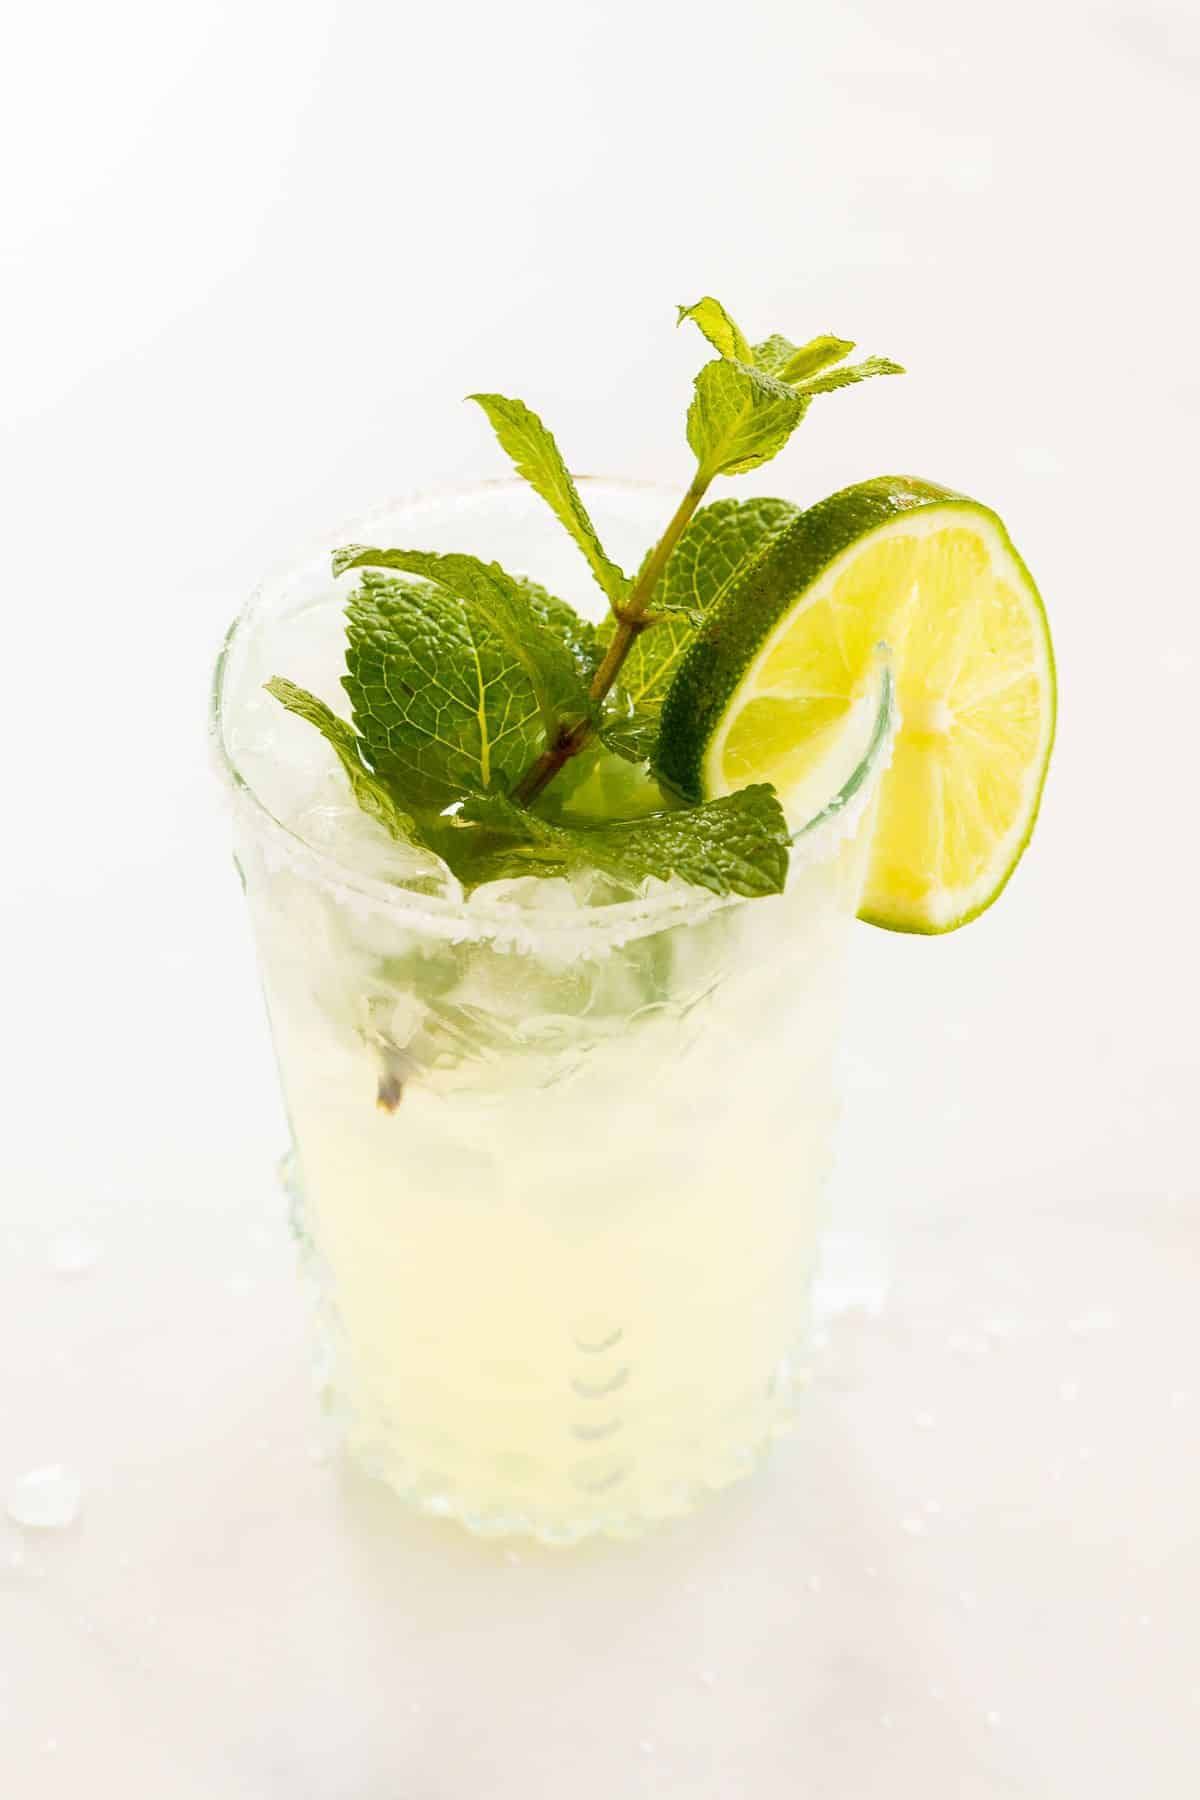 A mint margarita in a clear glass, topped with a sprig of mint and a slice of lime on a white background.